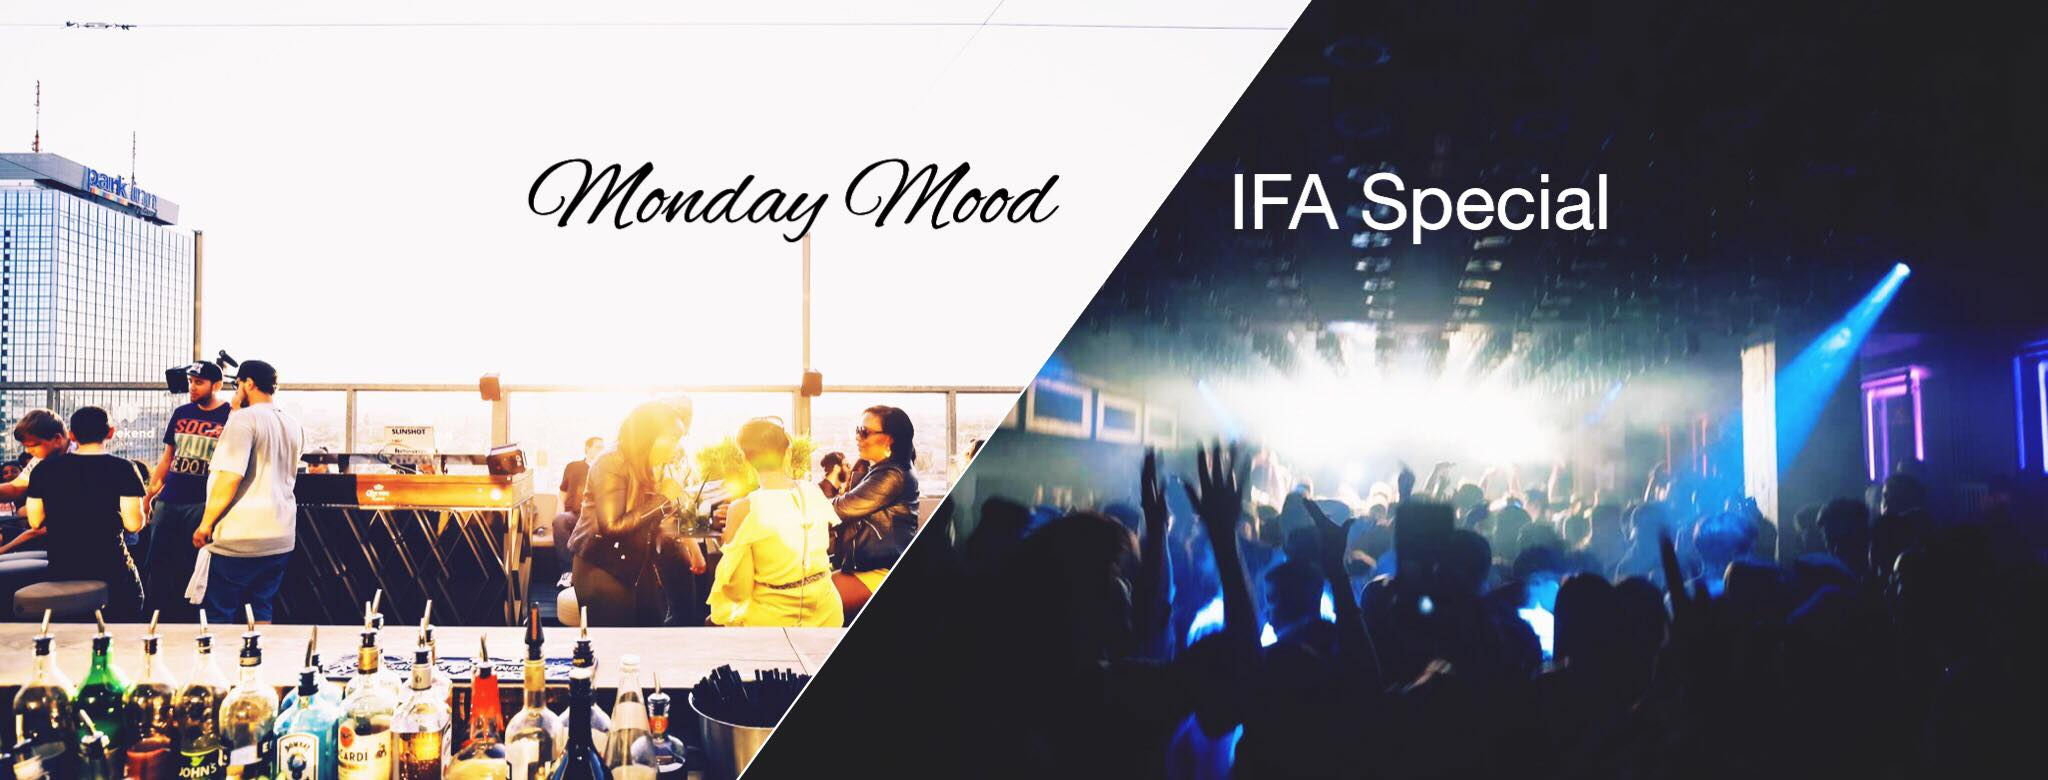 Monday Mood IFA Special  Give Monday a chance. We invite you to our Monday Mood IFA Special. Enjoy a delicious drink, the view and the sunset over Berlin.  ENTRANCE FOR FREE (We love you)  Drinks & finest Music - House & Hip Hop